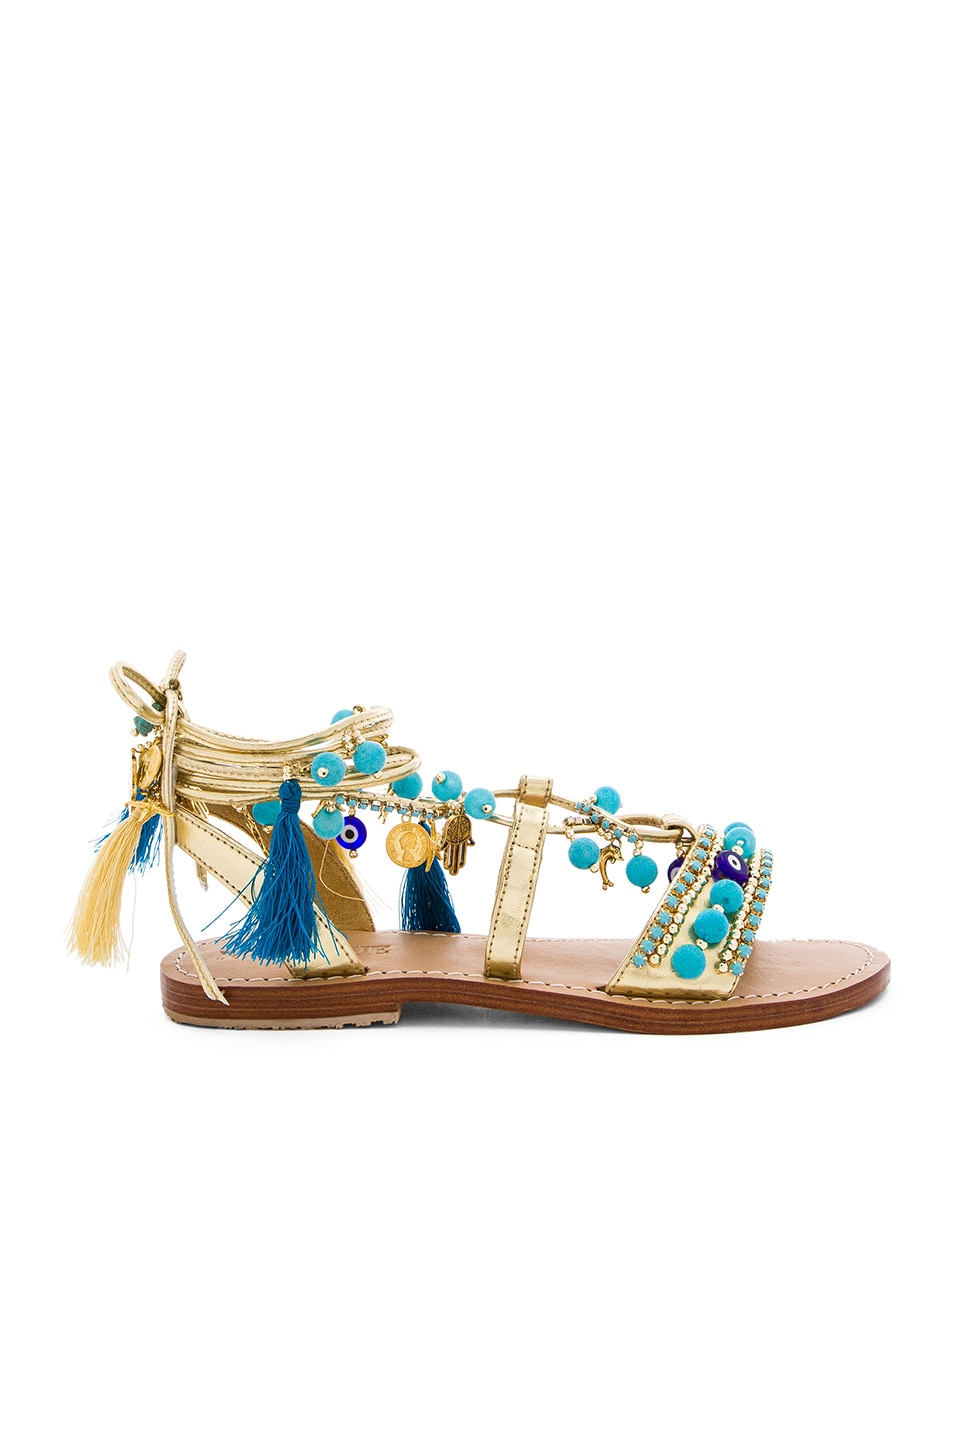 Mystique Lace Up Sandals in Gold & Turquoise